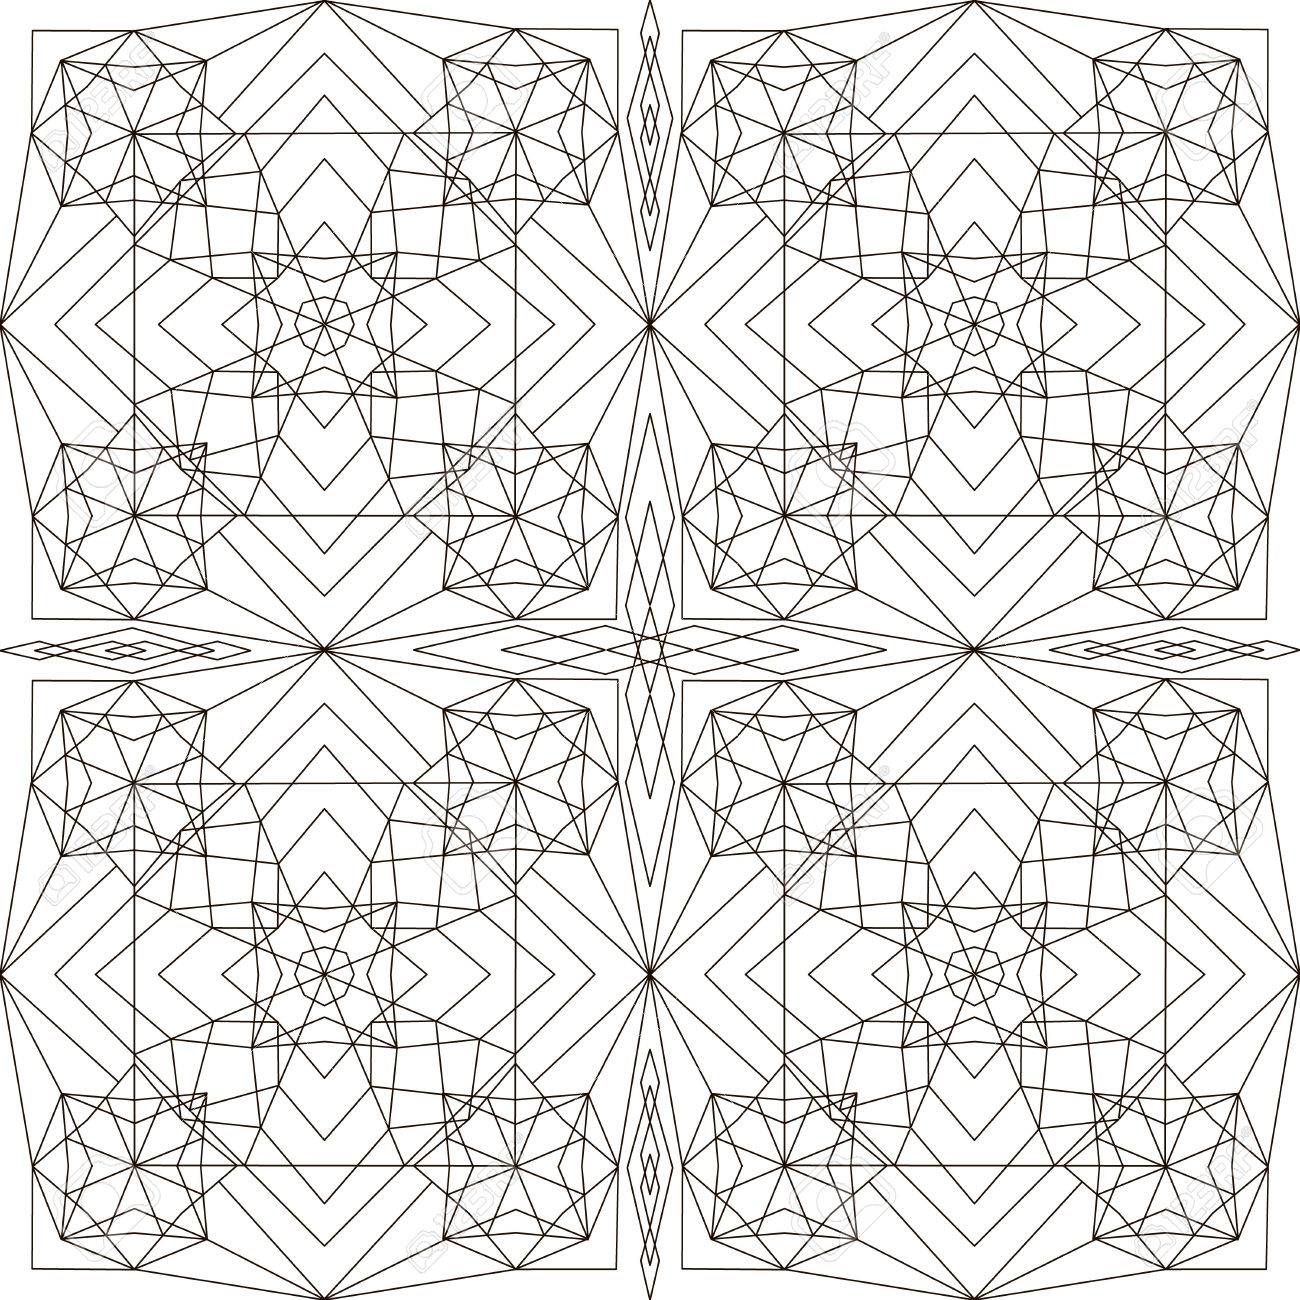 Patterns In Black And White. Page For Coloring Book. Geometrical ...